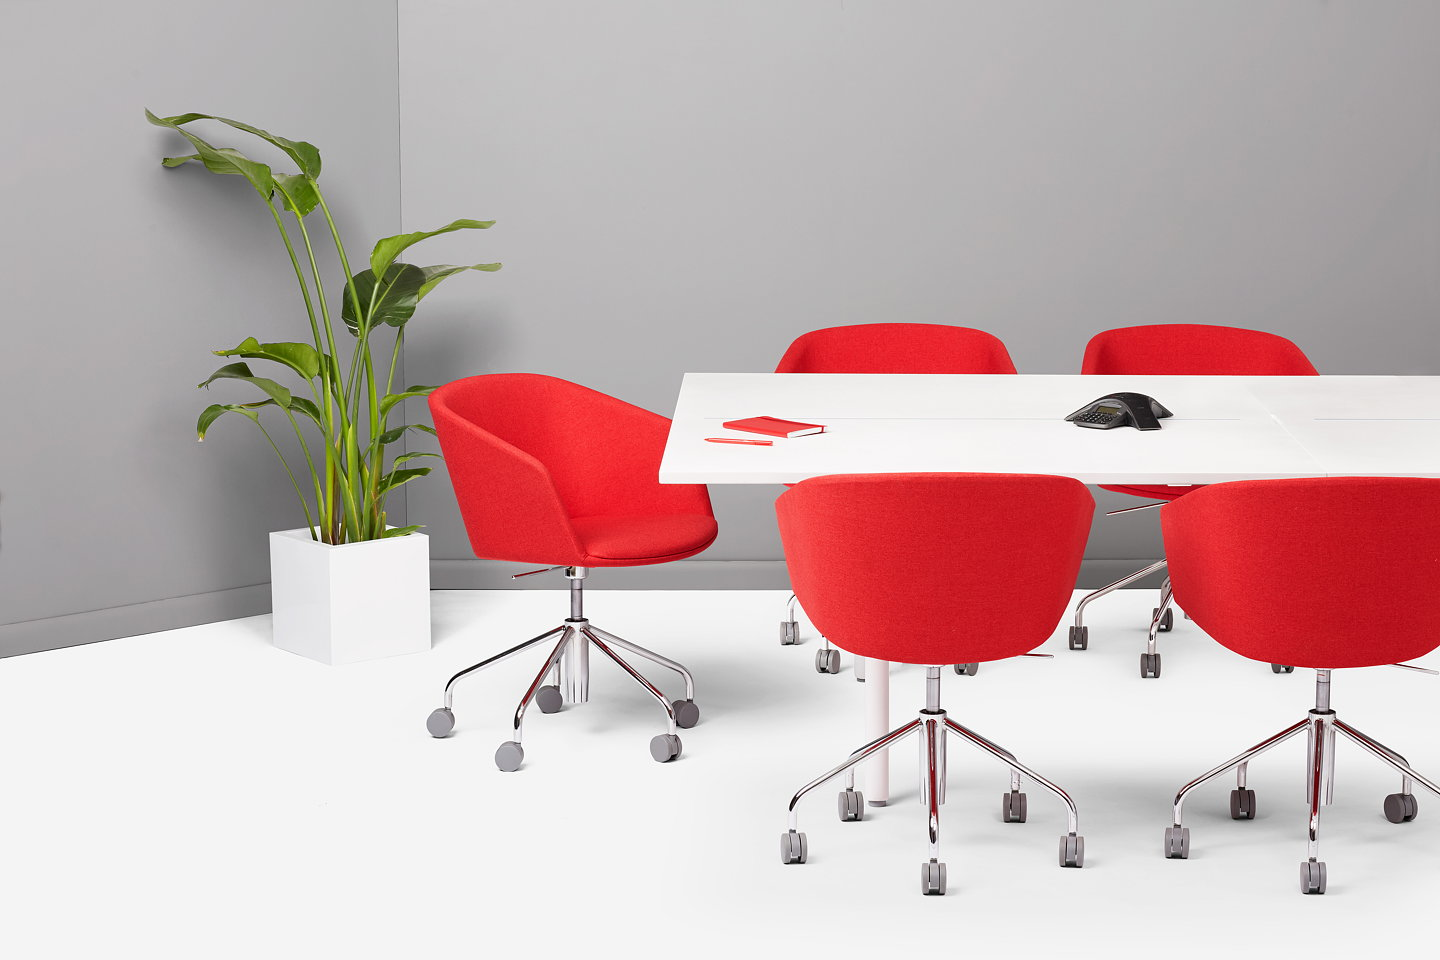 Poppins Fresh Take On The New Conference Room Table - Red conference table